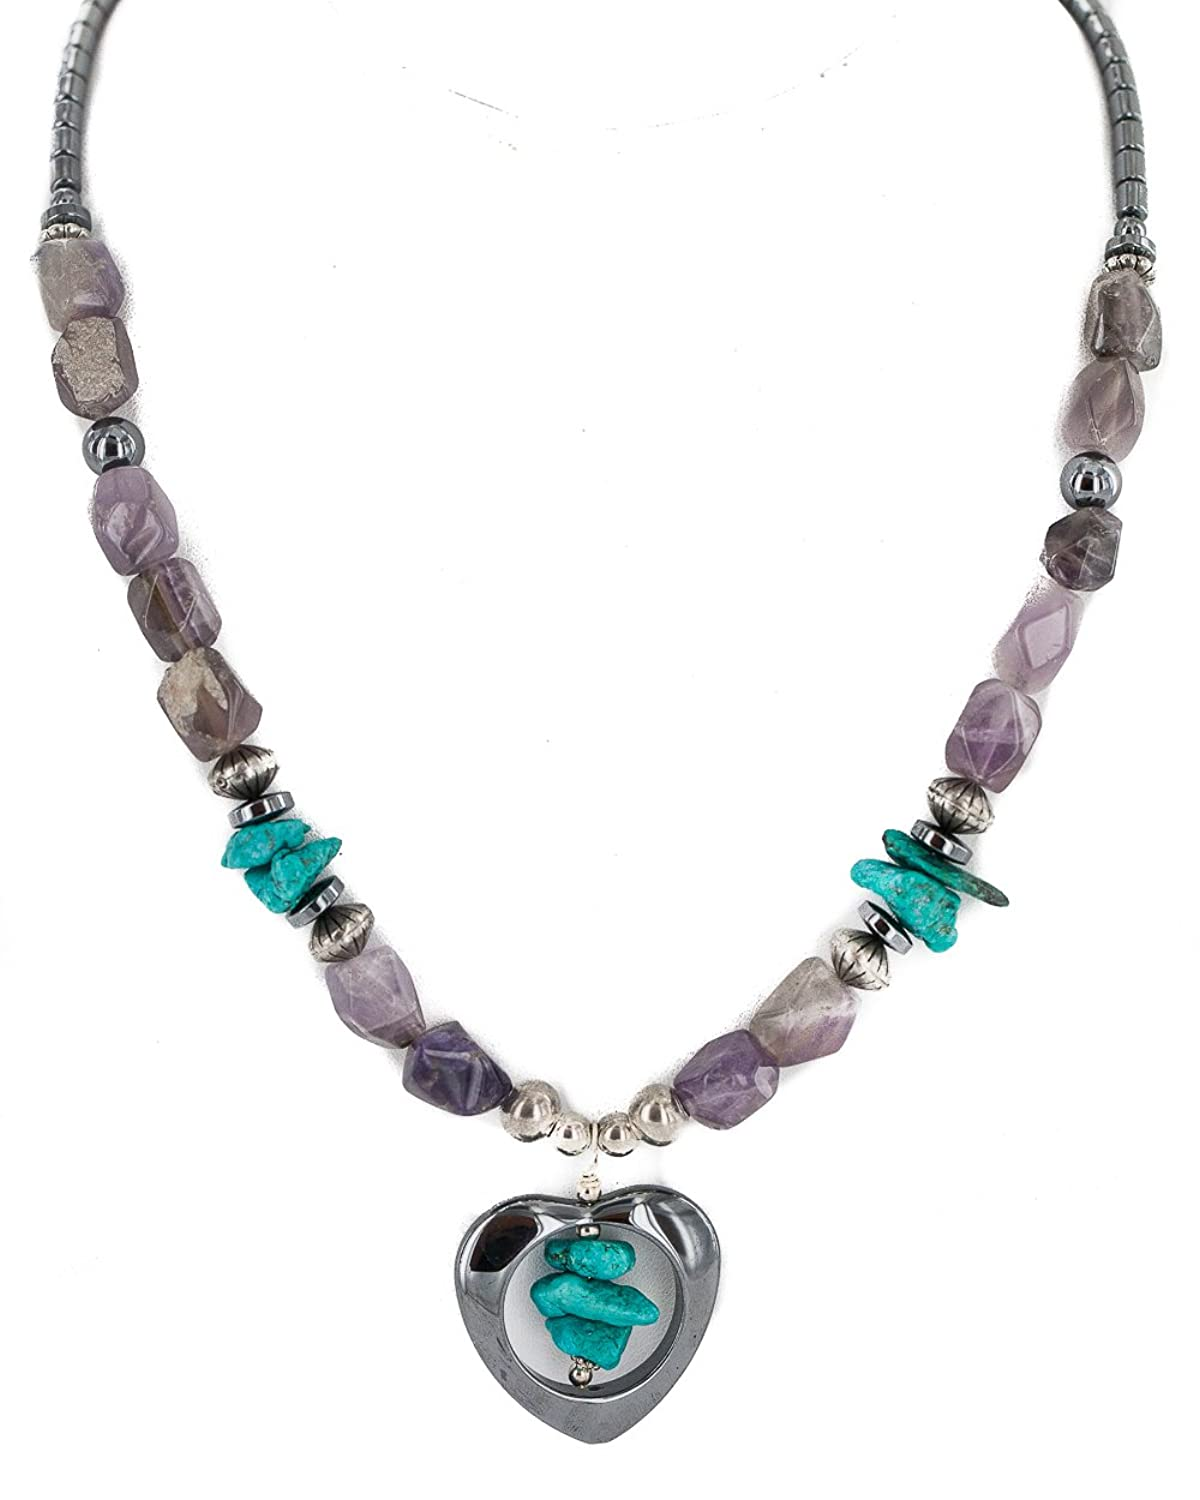 $280 Retail Tag Heart Silver Authentic Made by Charlene Little Navajo Natural Turquoise Amethyst Hematite Native American Necklace